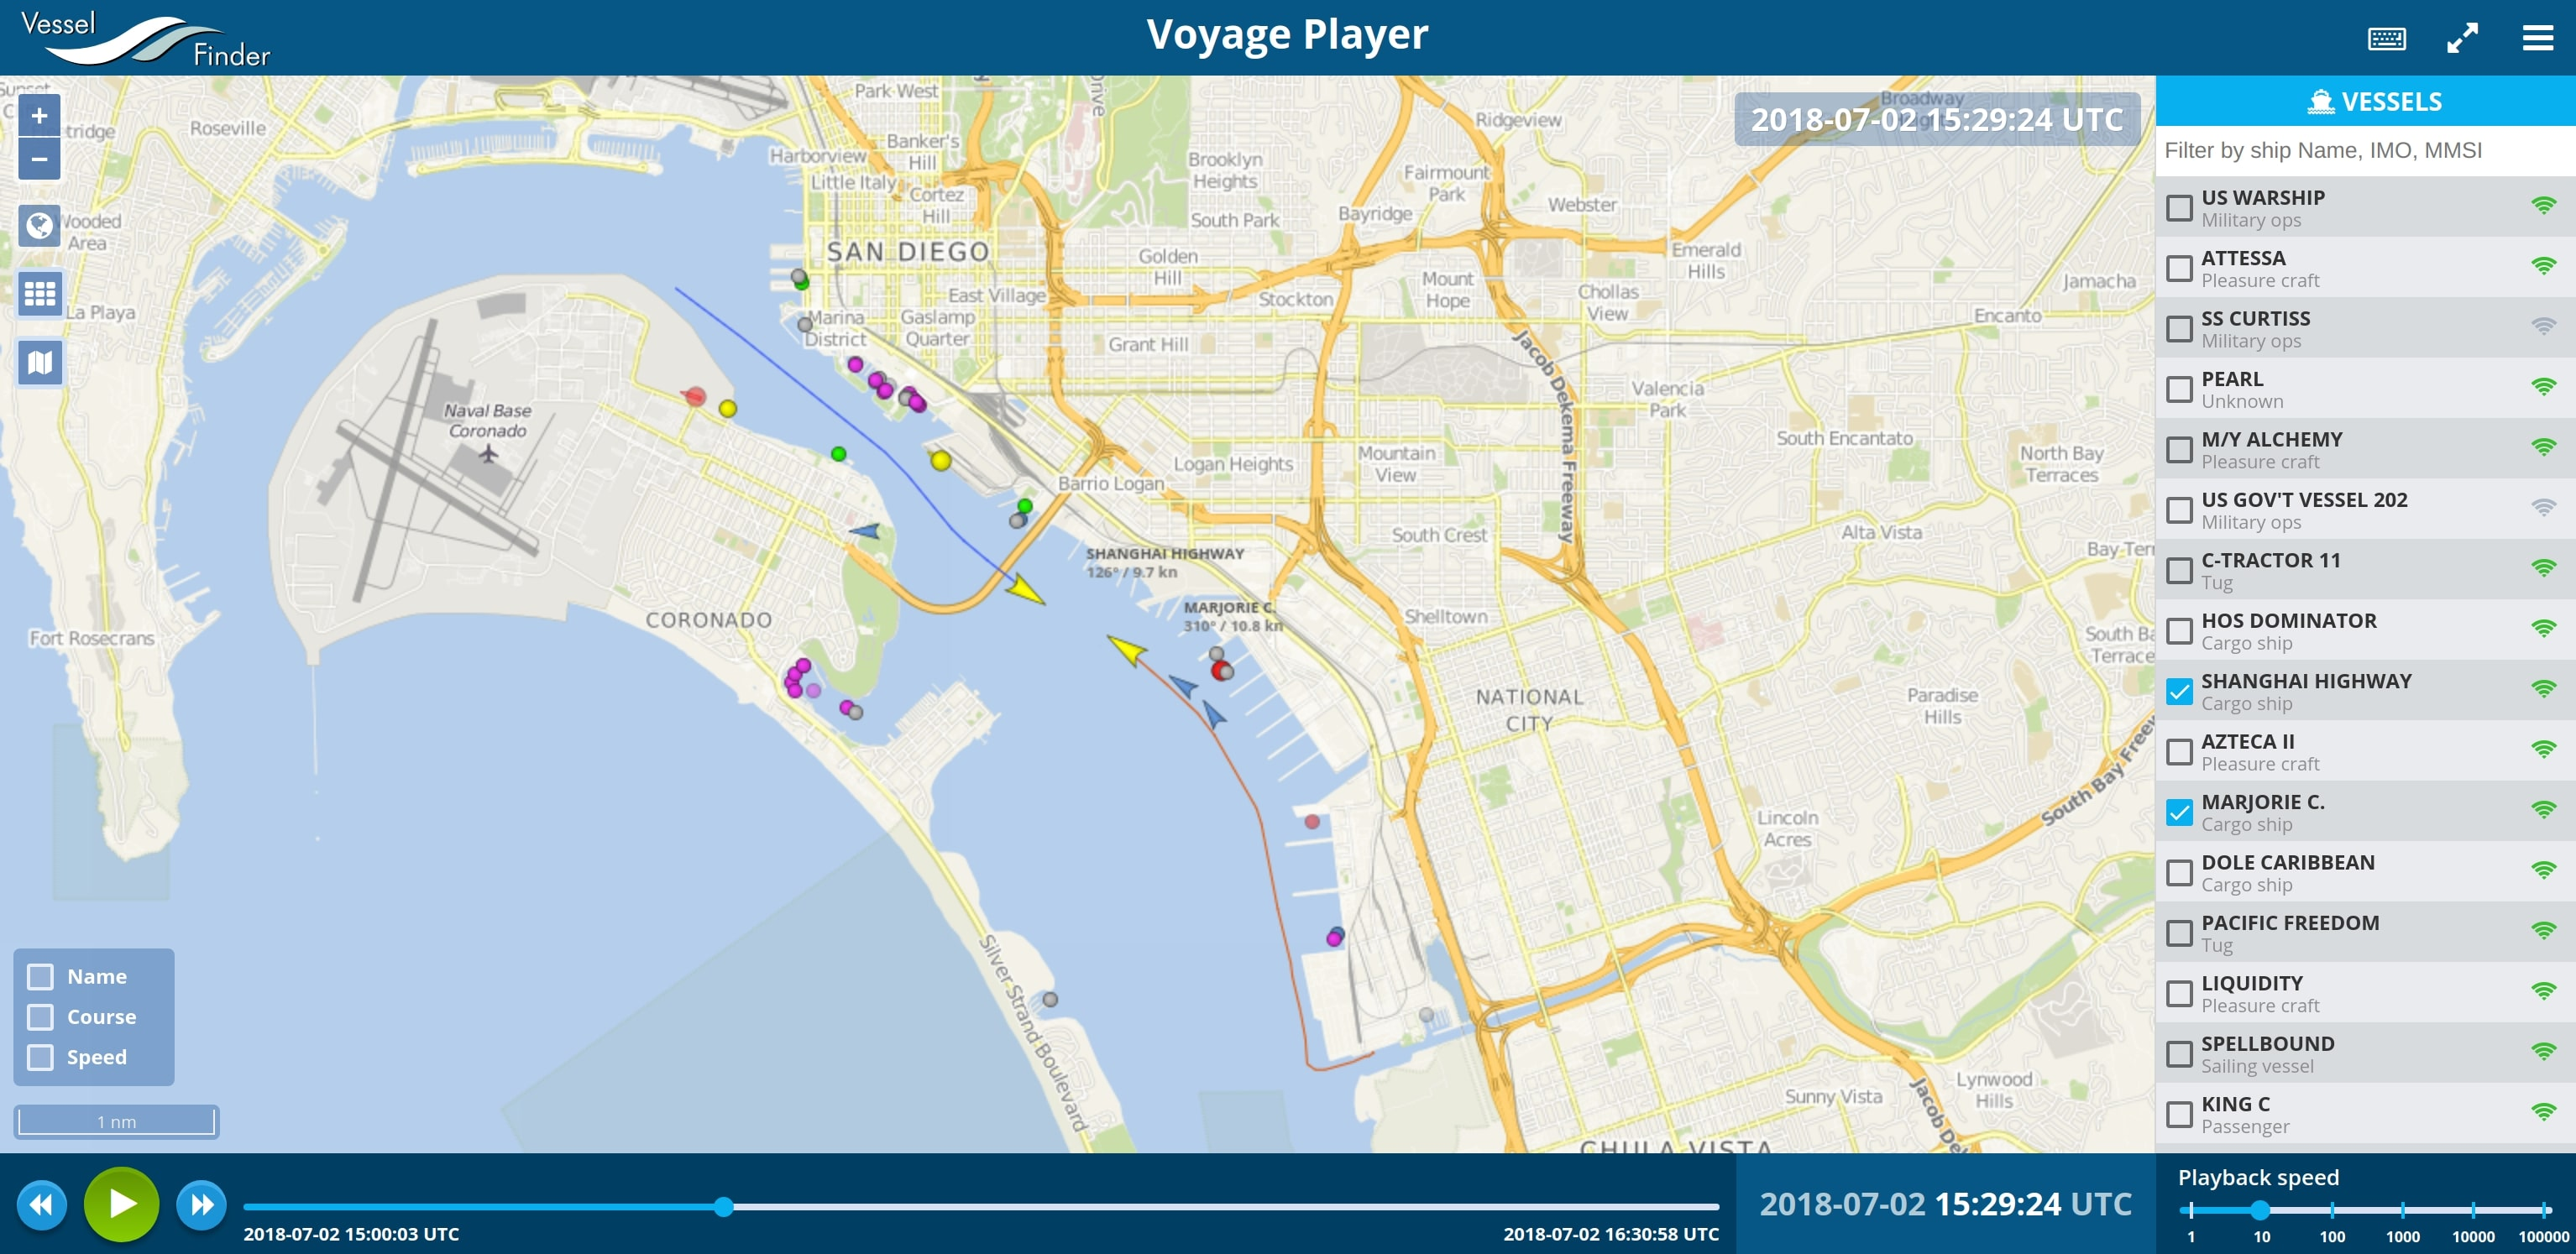 tool for AIS ship position data playback on a navigational chart